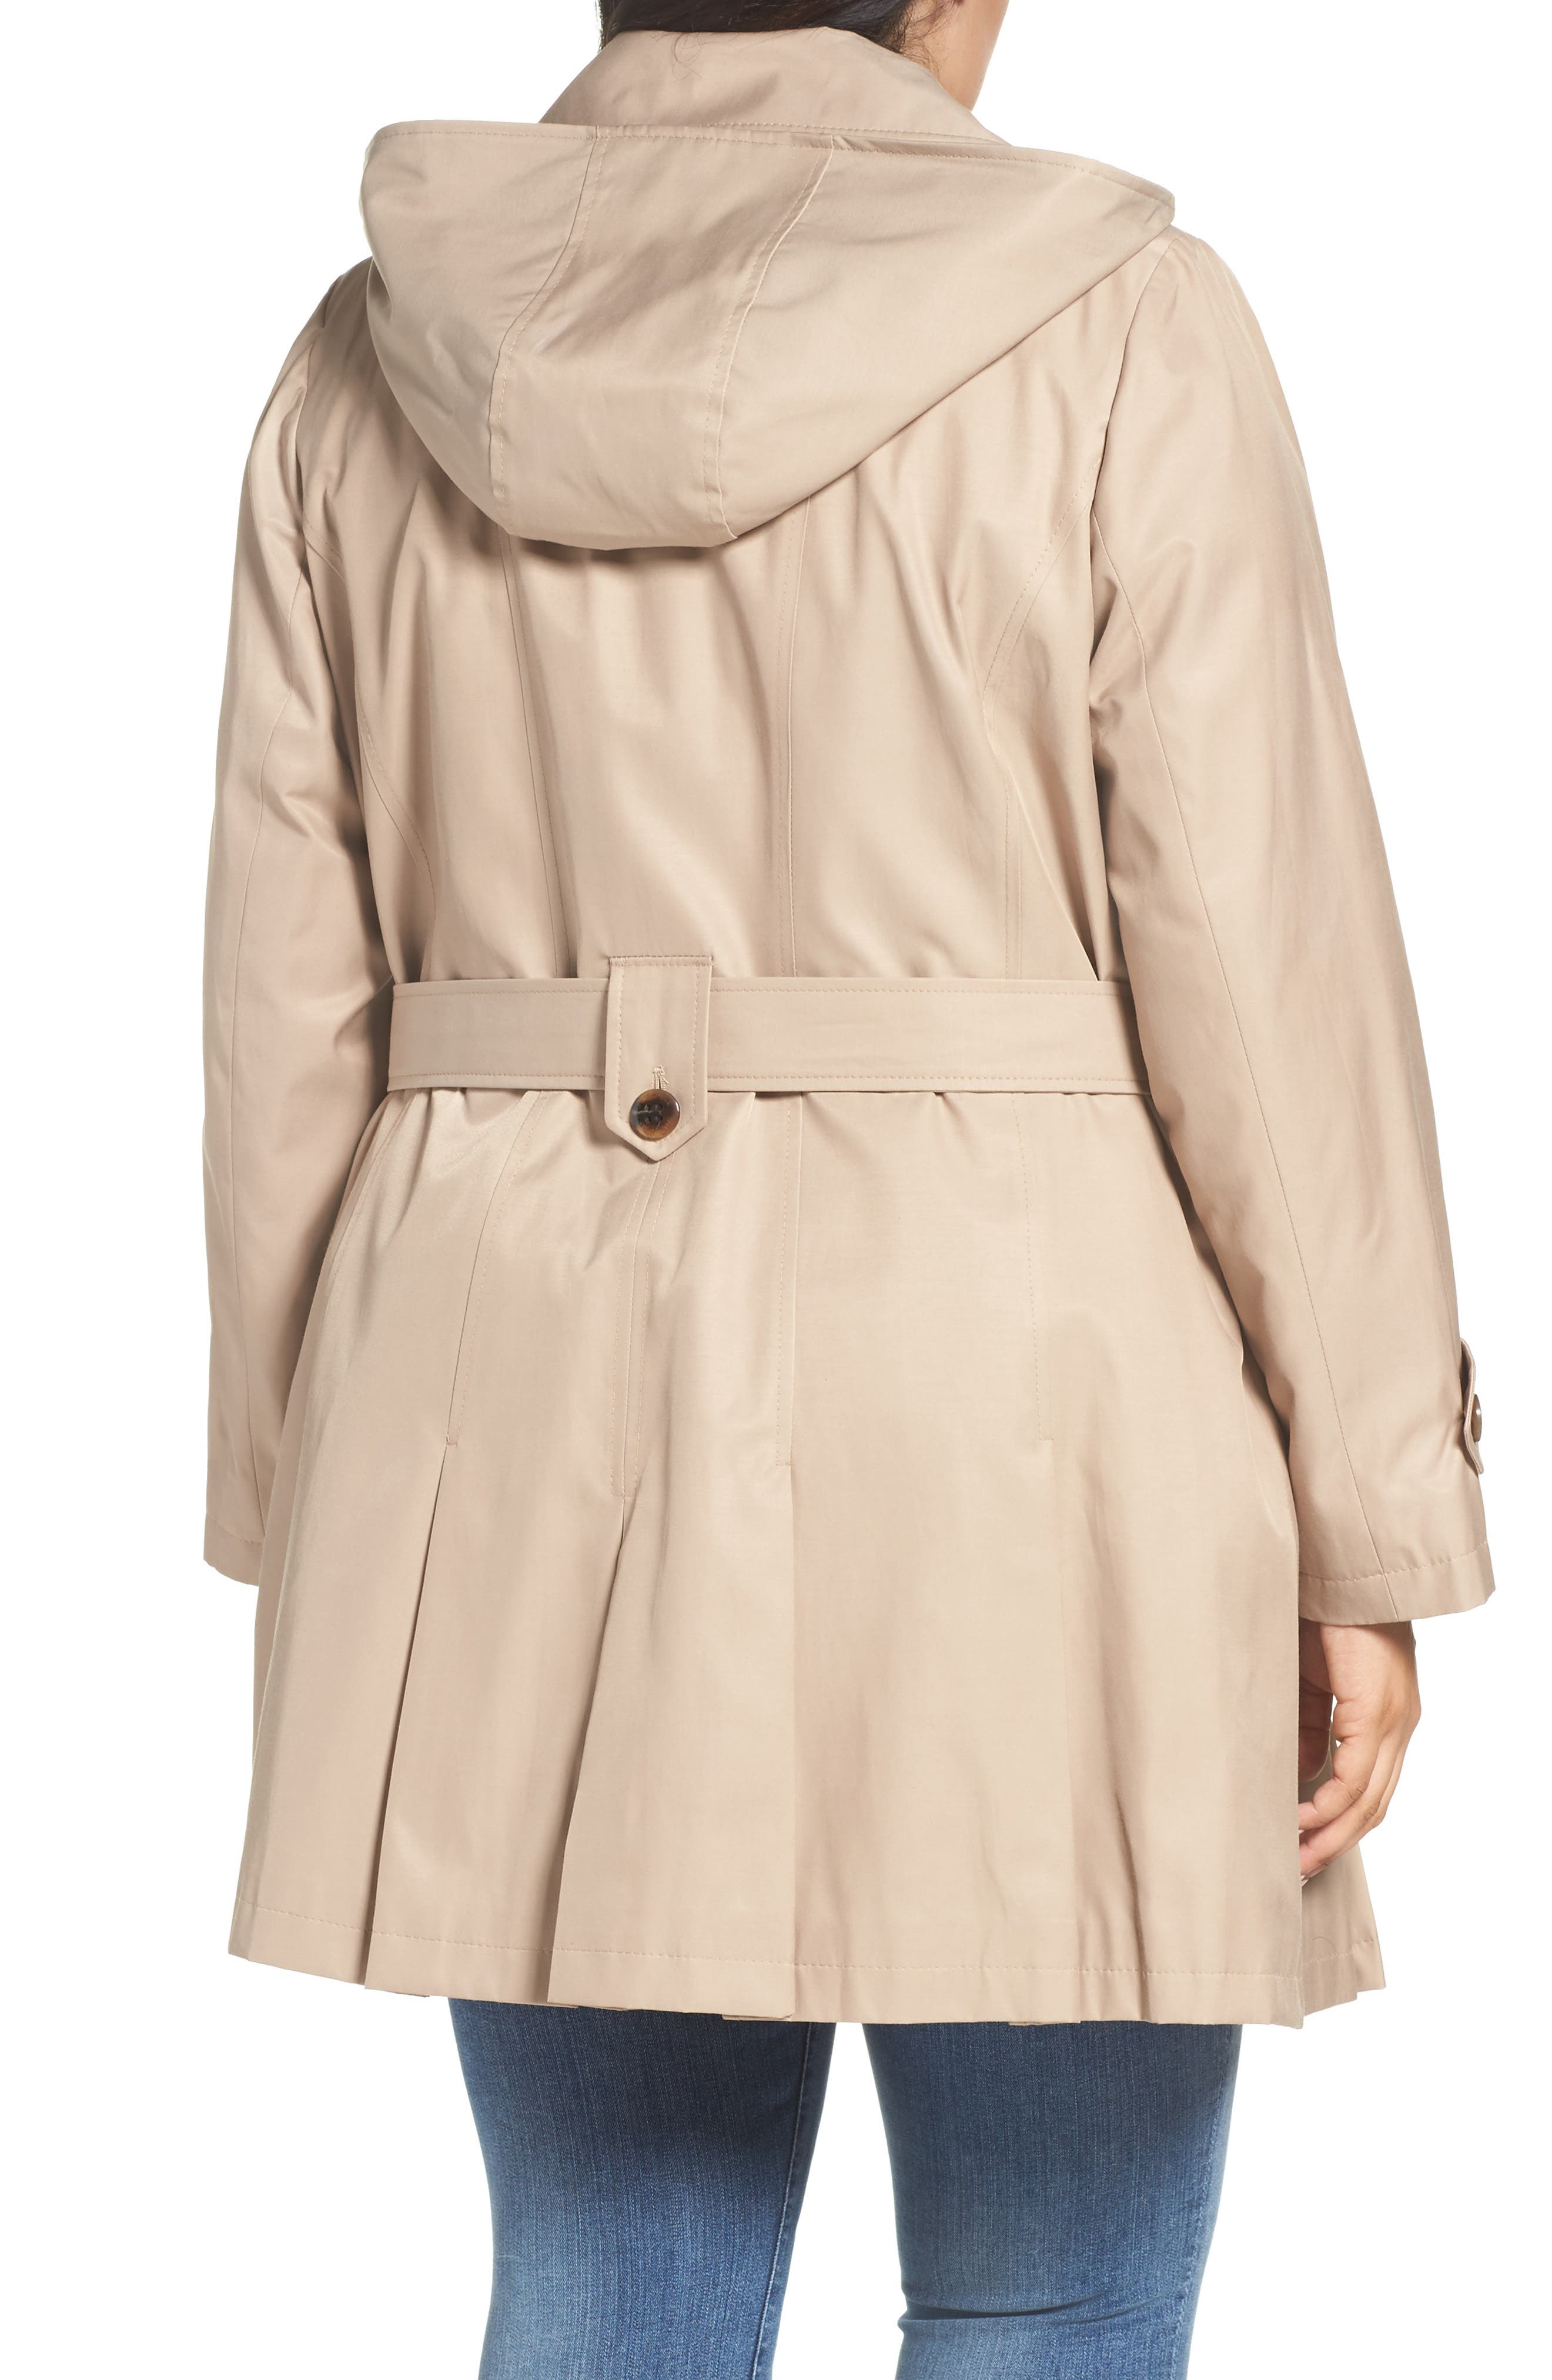 'Scarpa' Single Breasted Trench Coat,                             Alternate thumbnail 2, color,                             New Sand